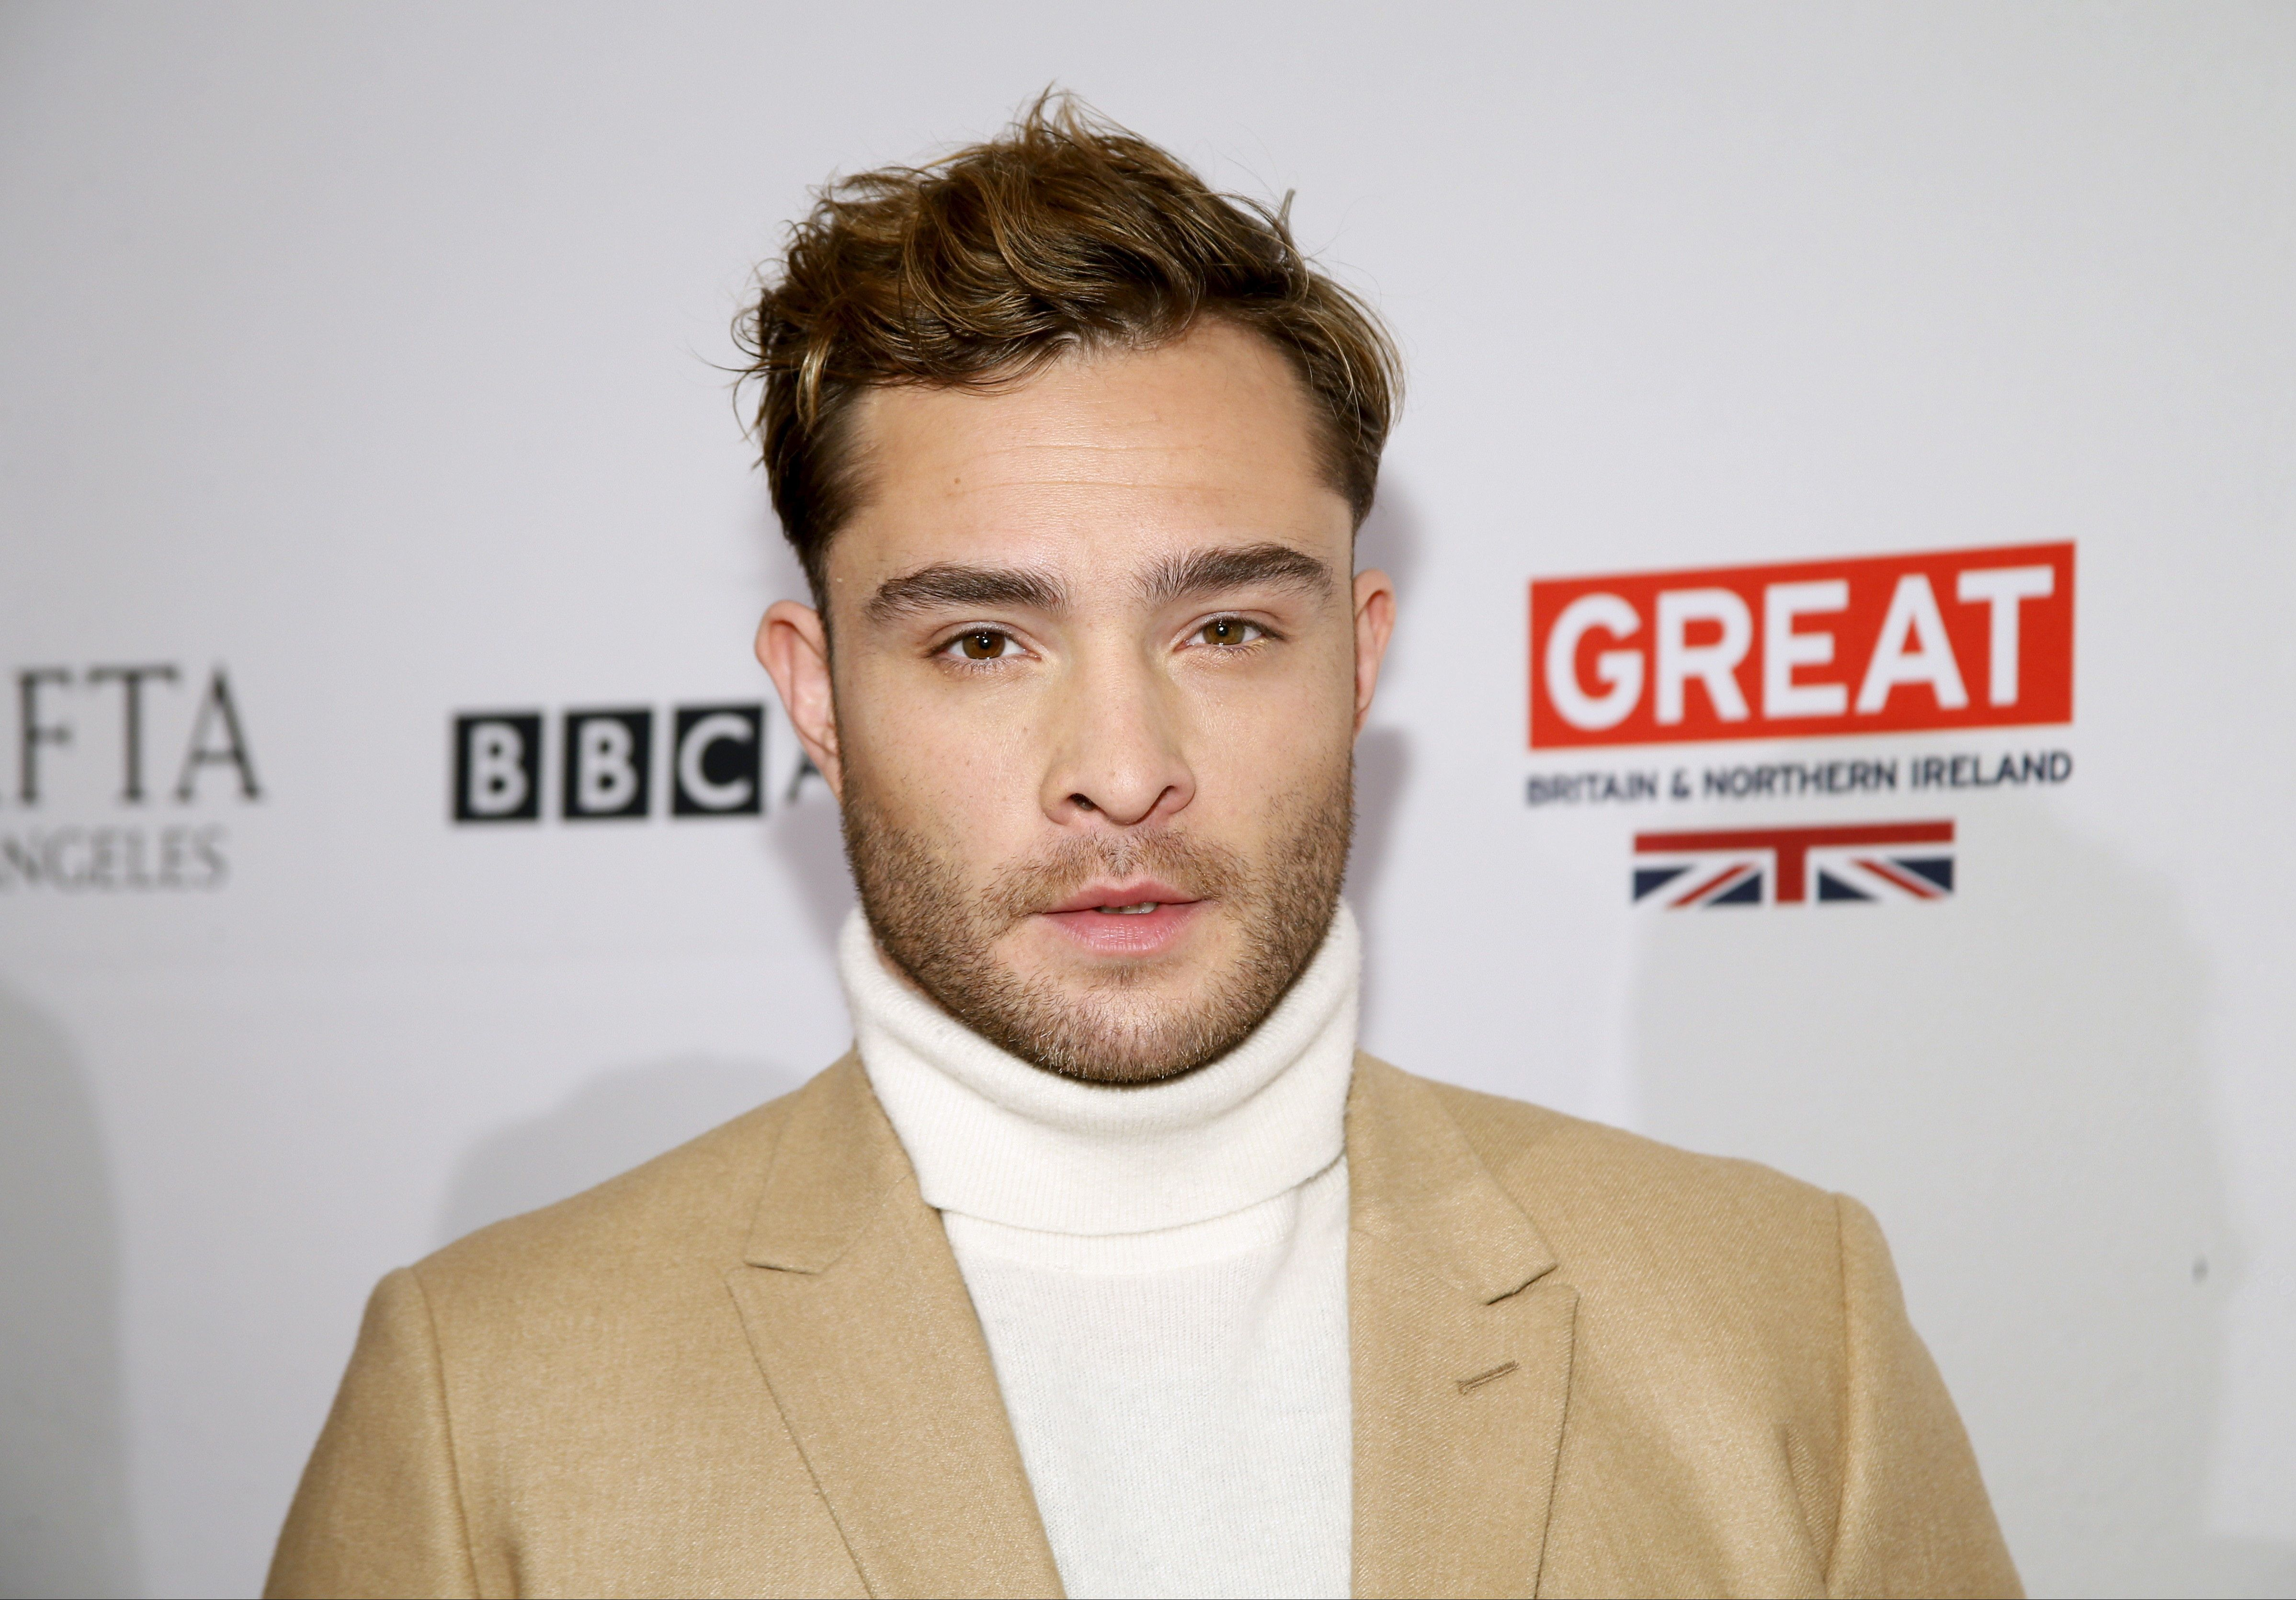 Actor Ed Westwick poses at the BAFTA Los Angeles Awards Season Tea Party in Beverly Hills, California, January 9, 2016. REUTERS/Danny Moloshok